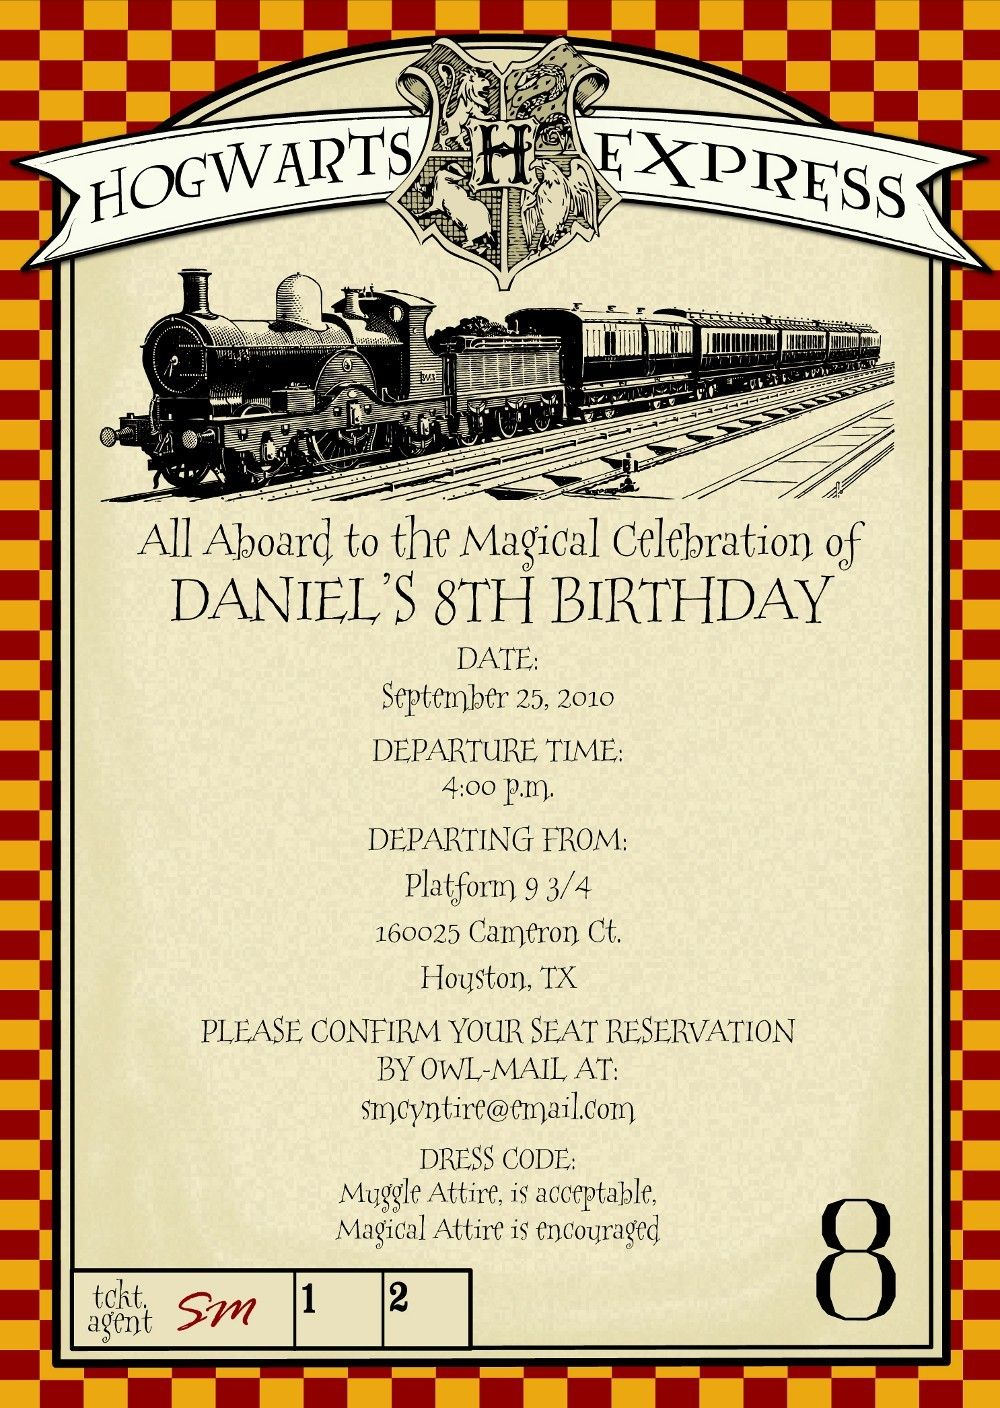 Harry Potter Party Invitations Free Printable | Harry Potter ...